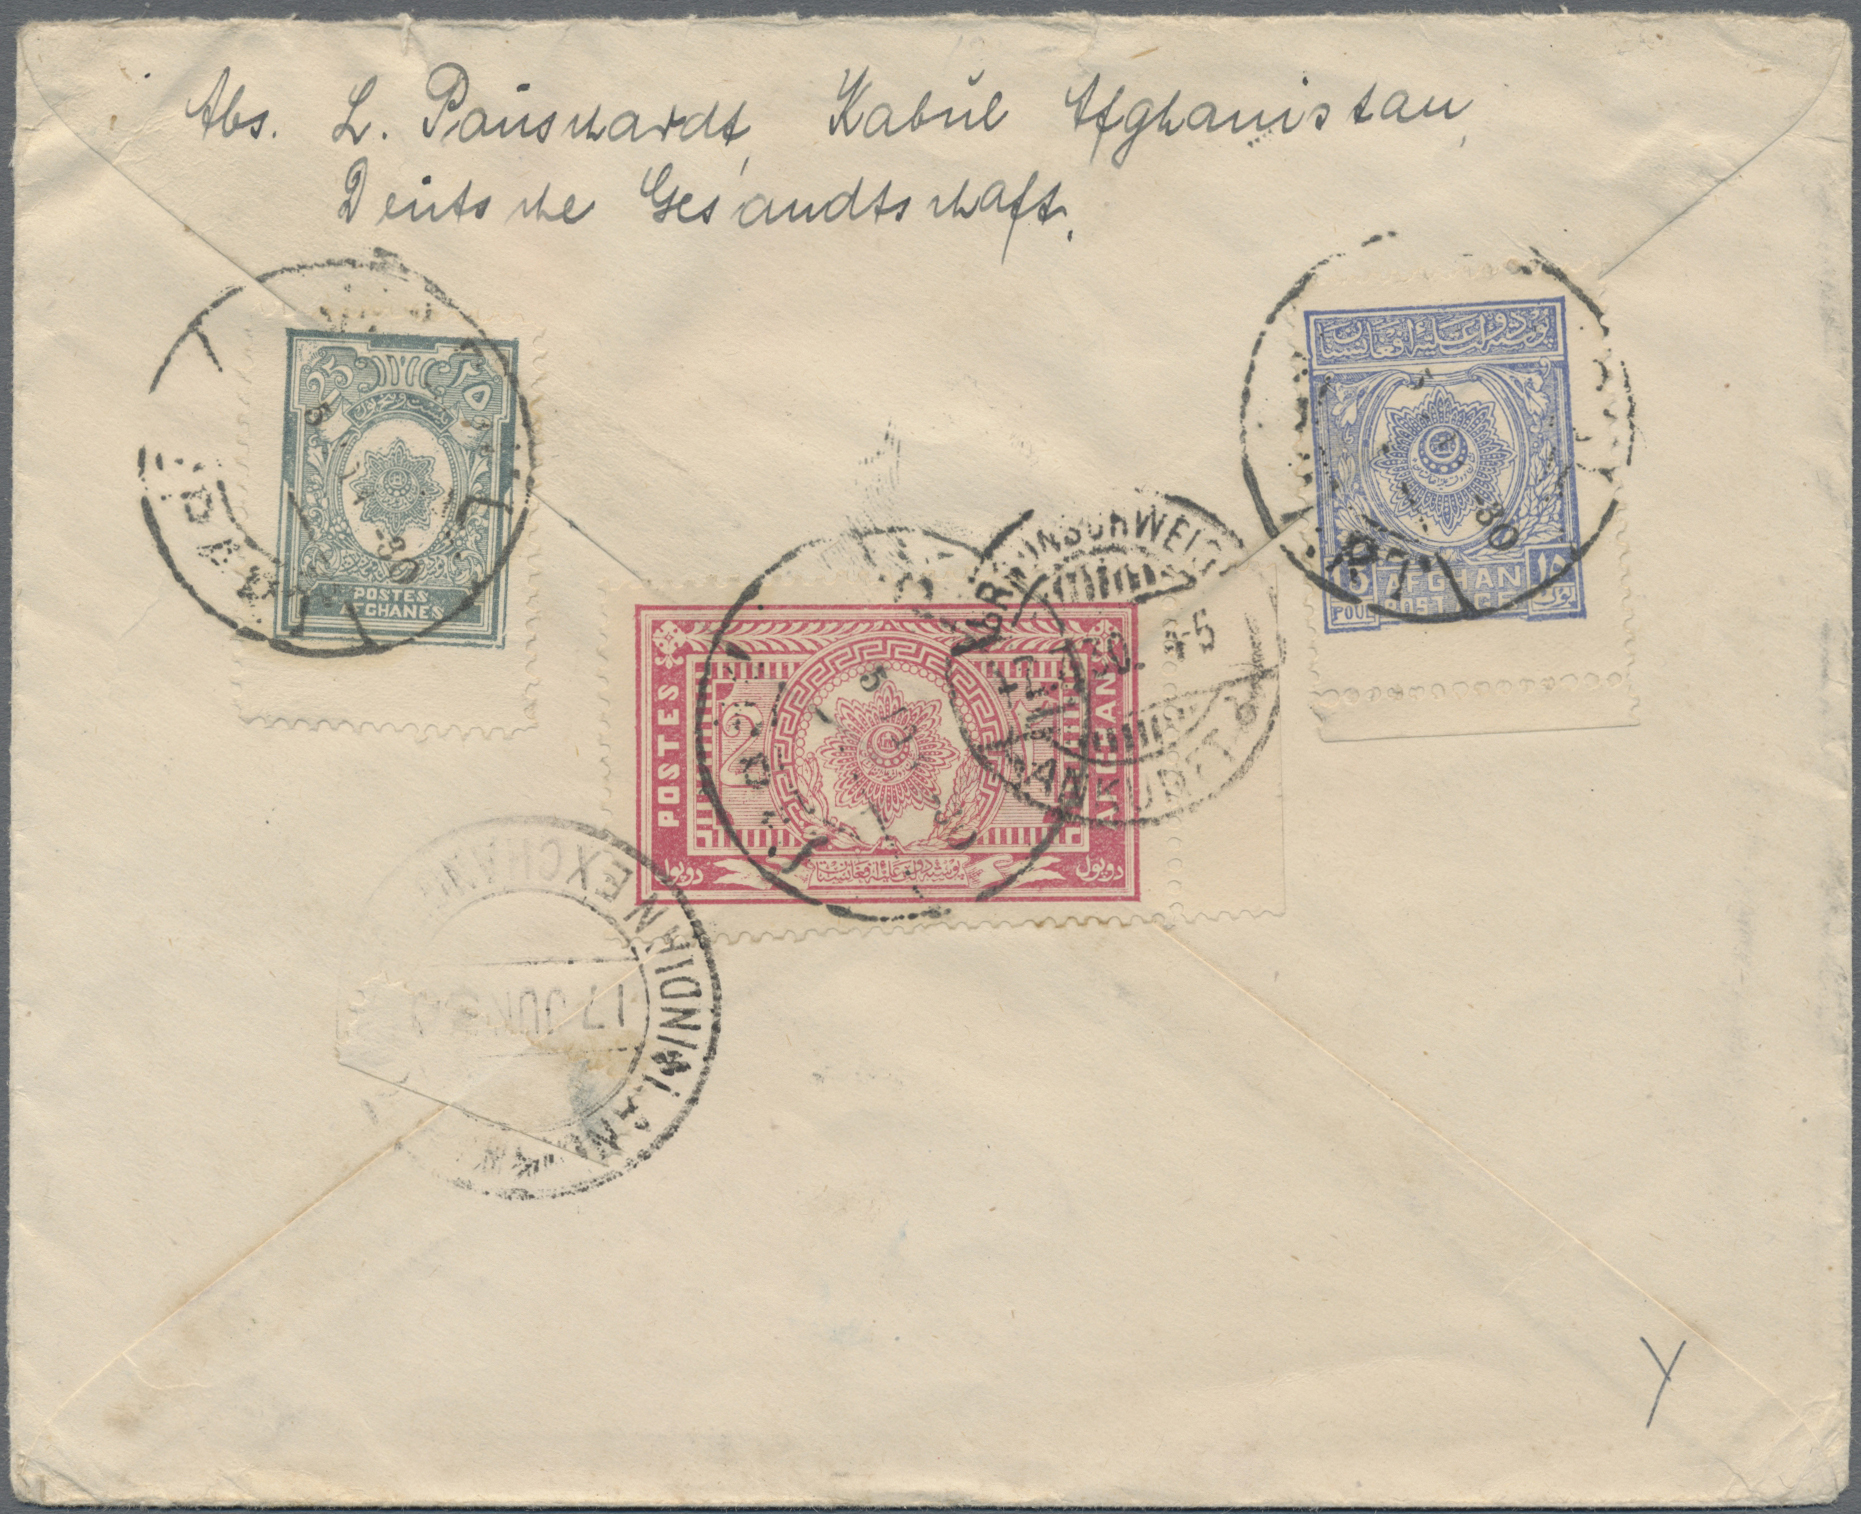 Lot 07016 - Afghanistan  -  Auktionshaus Christoph Gärtner GmbH & Co. KG Sale #45- ASIA/OVERSEAS/EUROPE